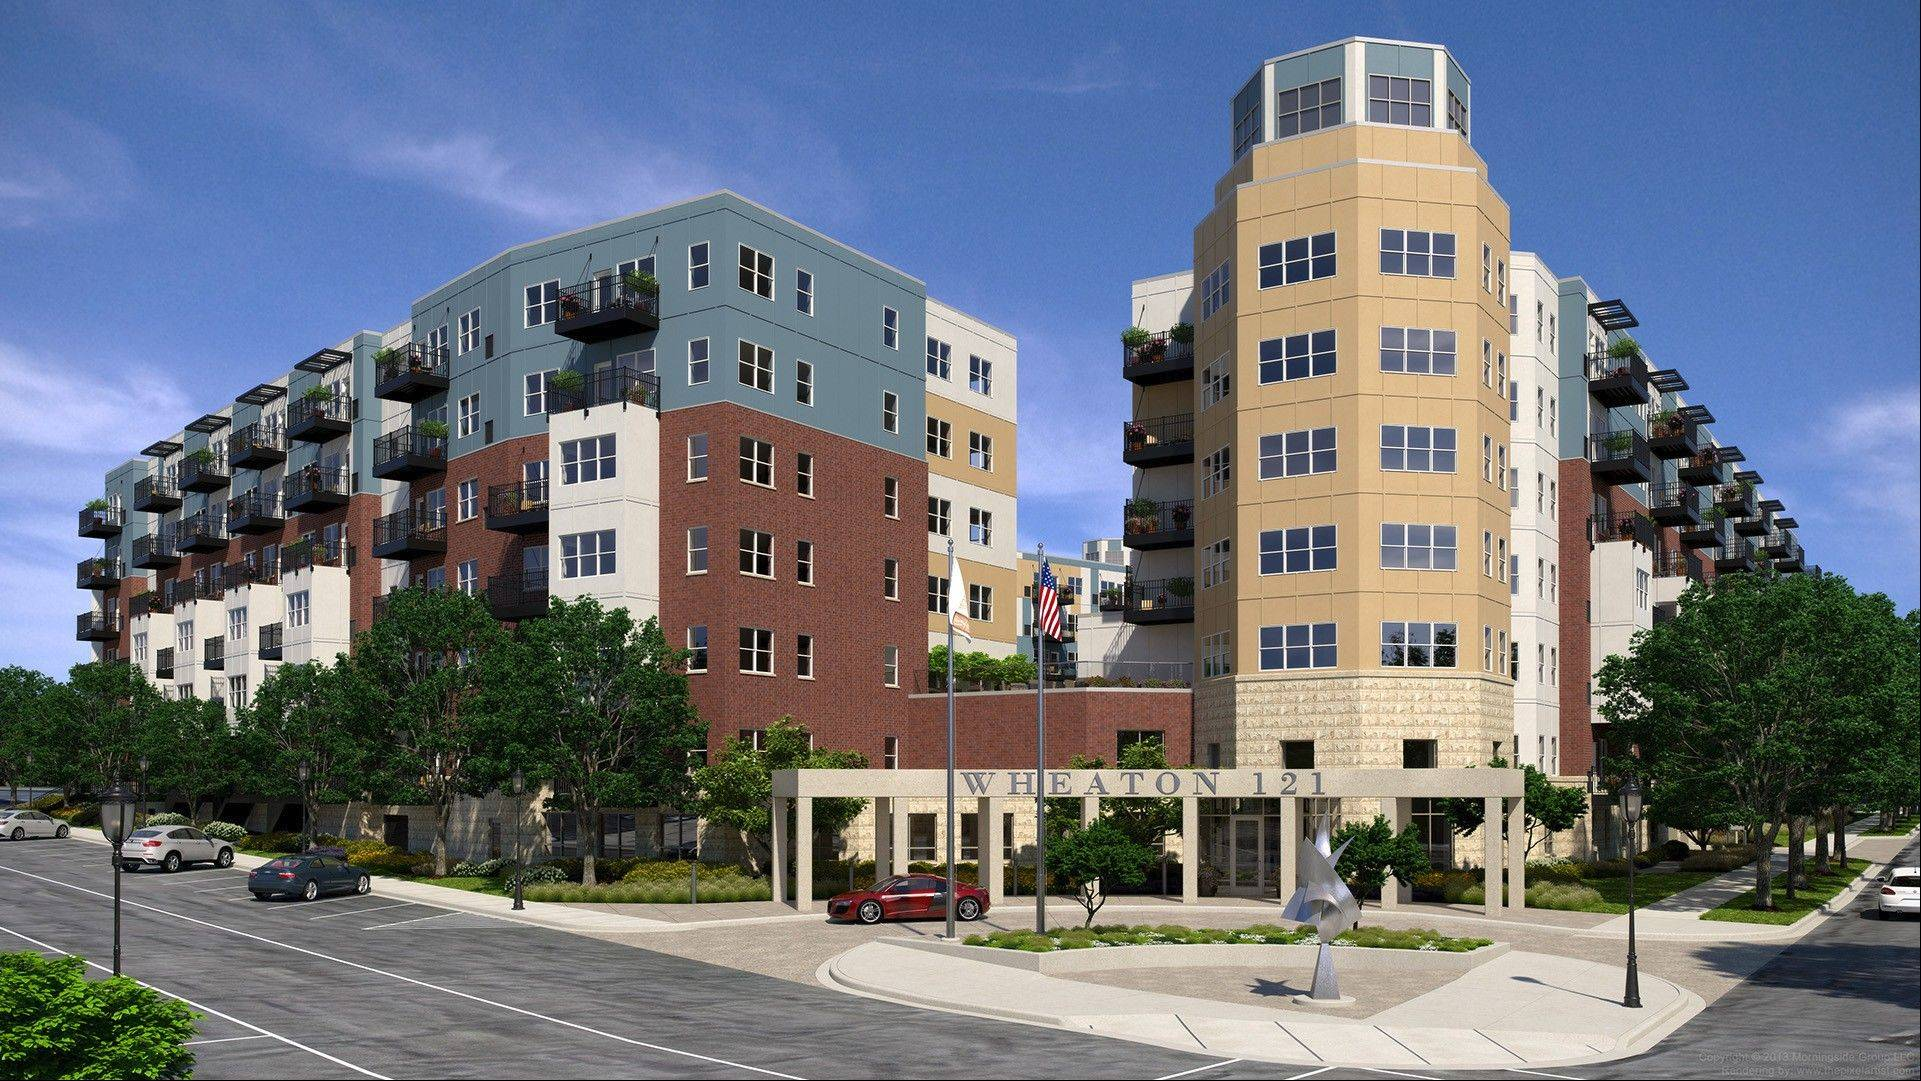 Wheaton luxury apartment tenants begin to move in downtown